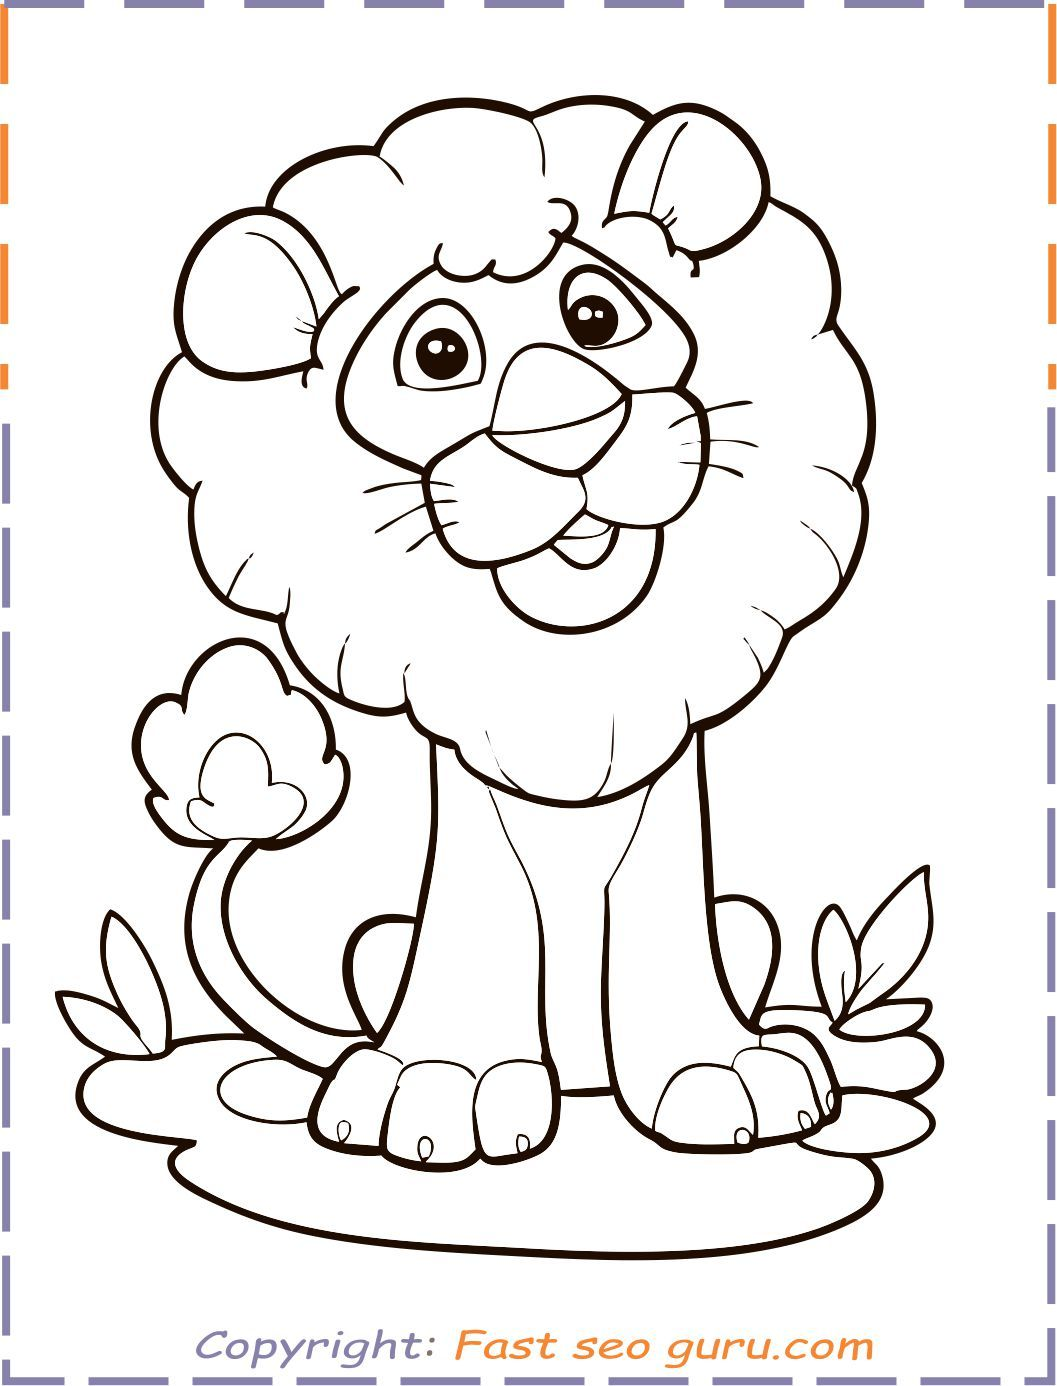 Lion Coloring Pages Simple And Advanced Lion Coloring Pages Animal Coloring Pages Jungle Coloring Pages